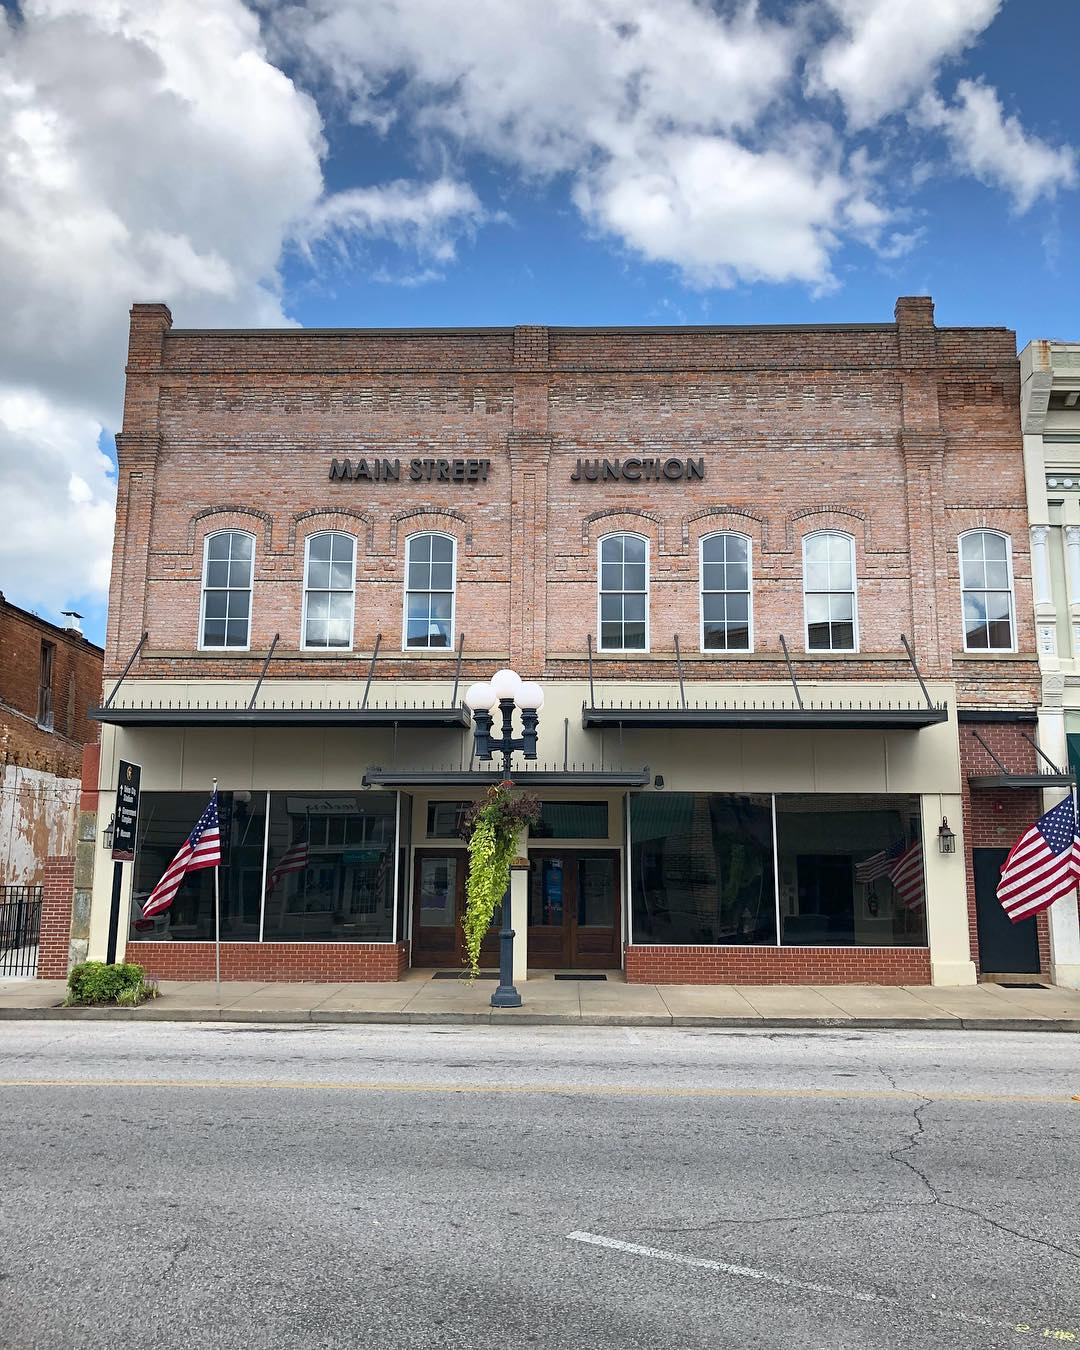 Constructed in 1890, this building was restored in 2016 as Main Street Junction. This restored building is now a meeting and wedding venue in the historic downtown Union